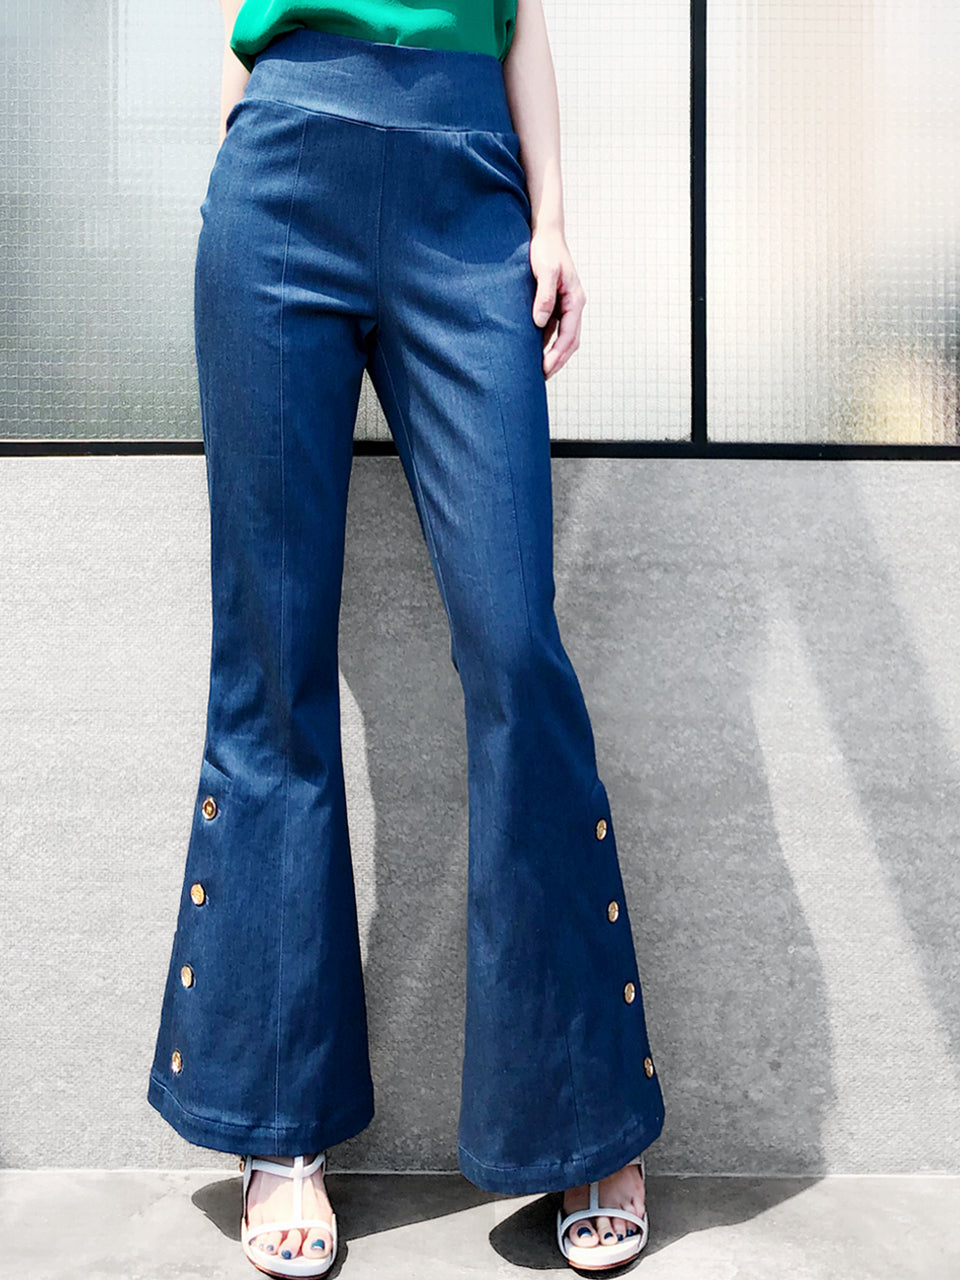 Surprise Sale! Dark Blue Denim Flare Leg Pull On Button Pants